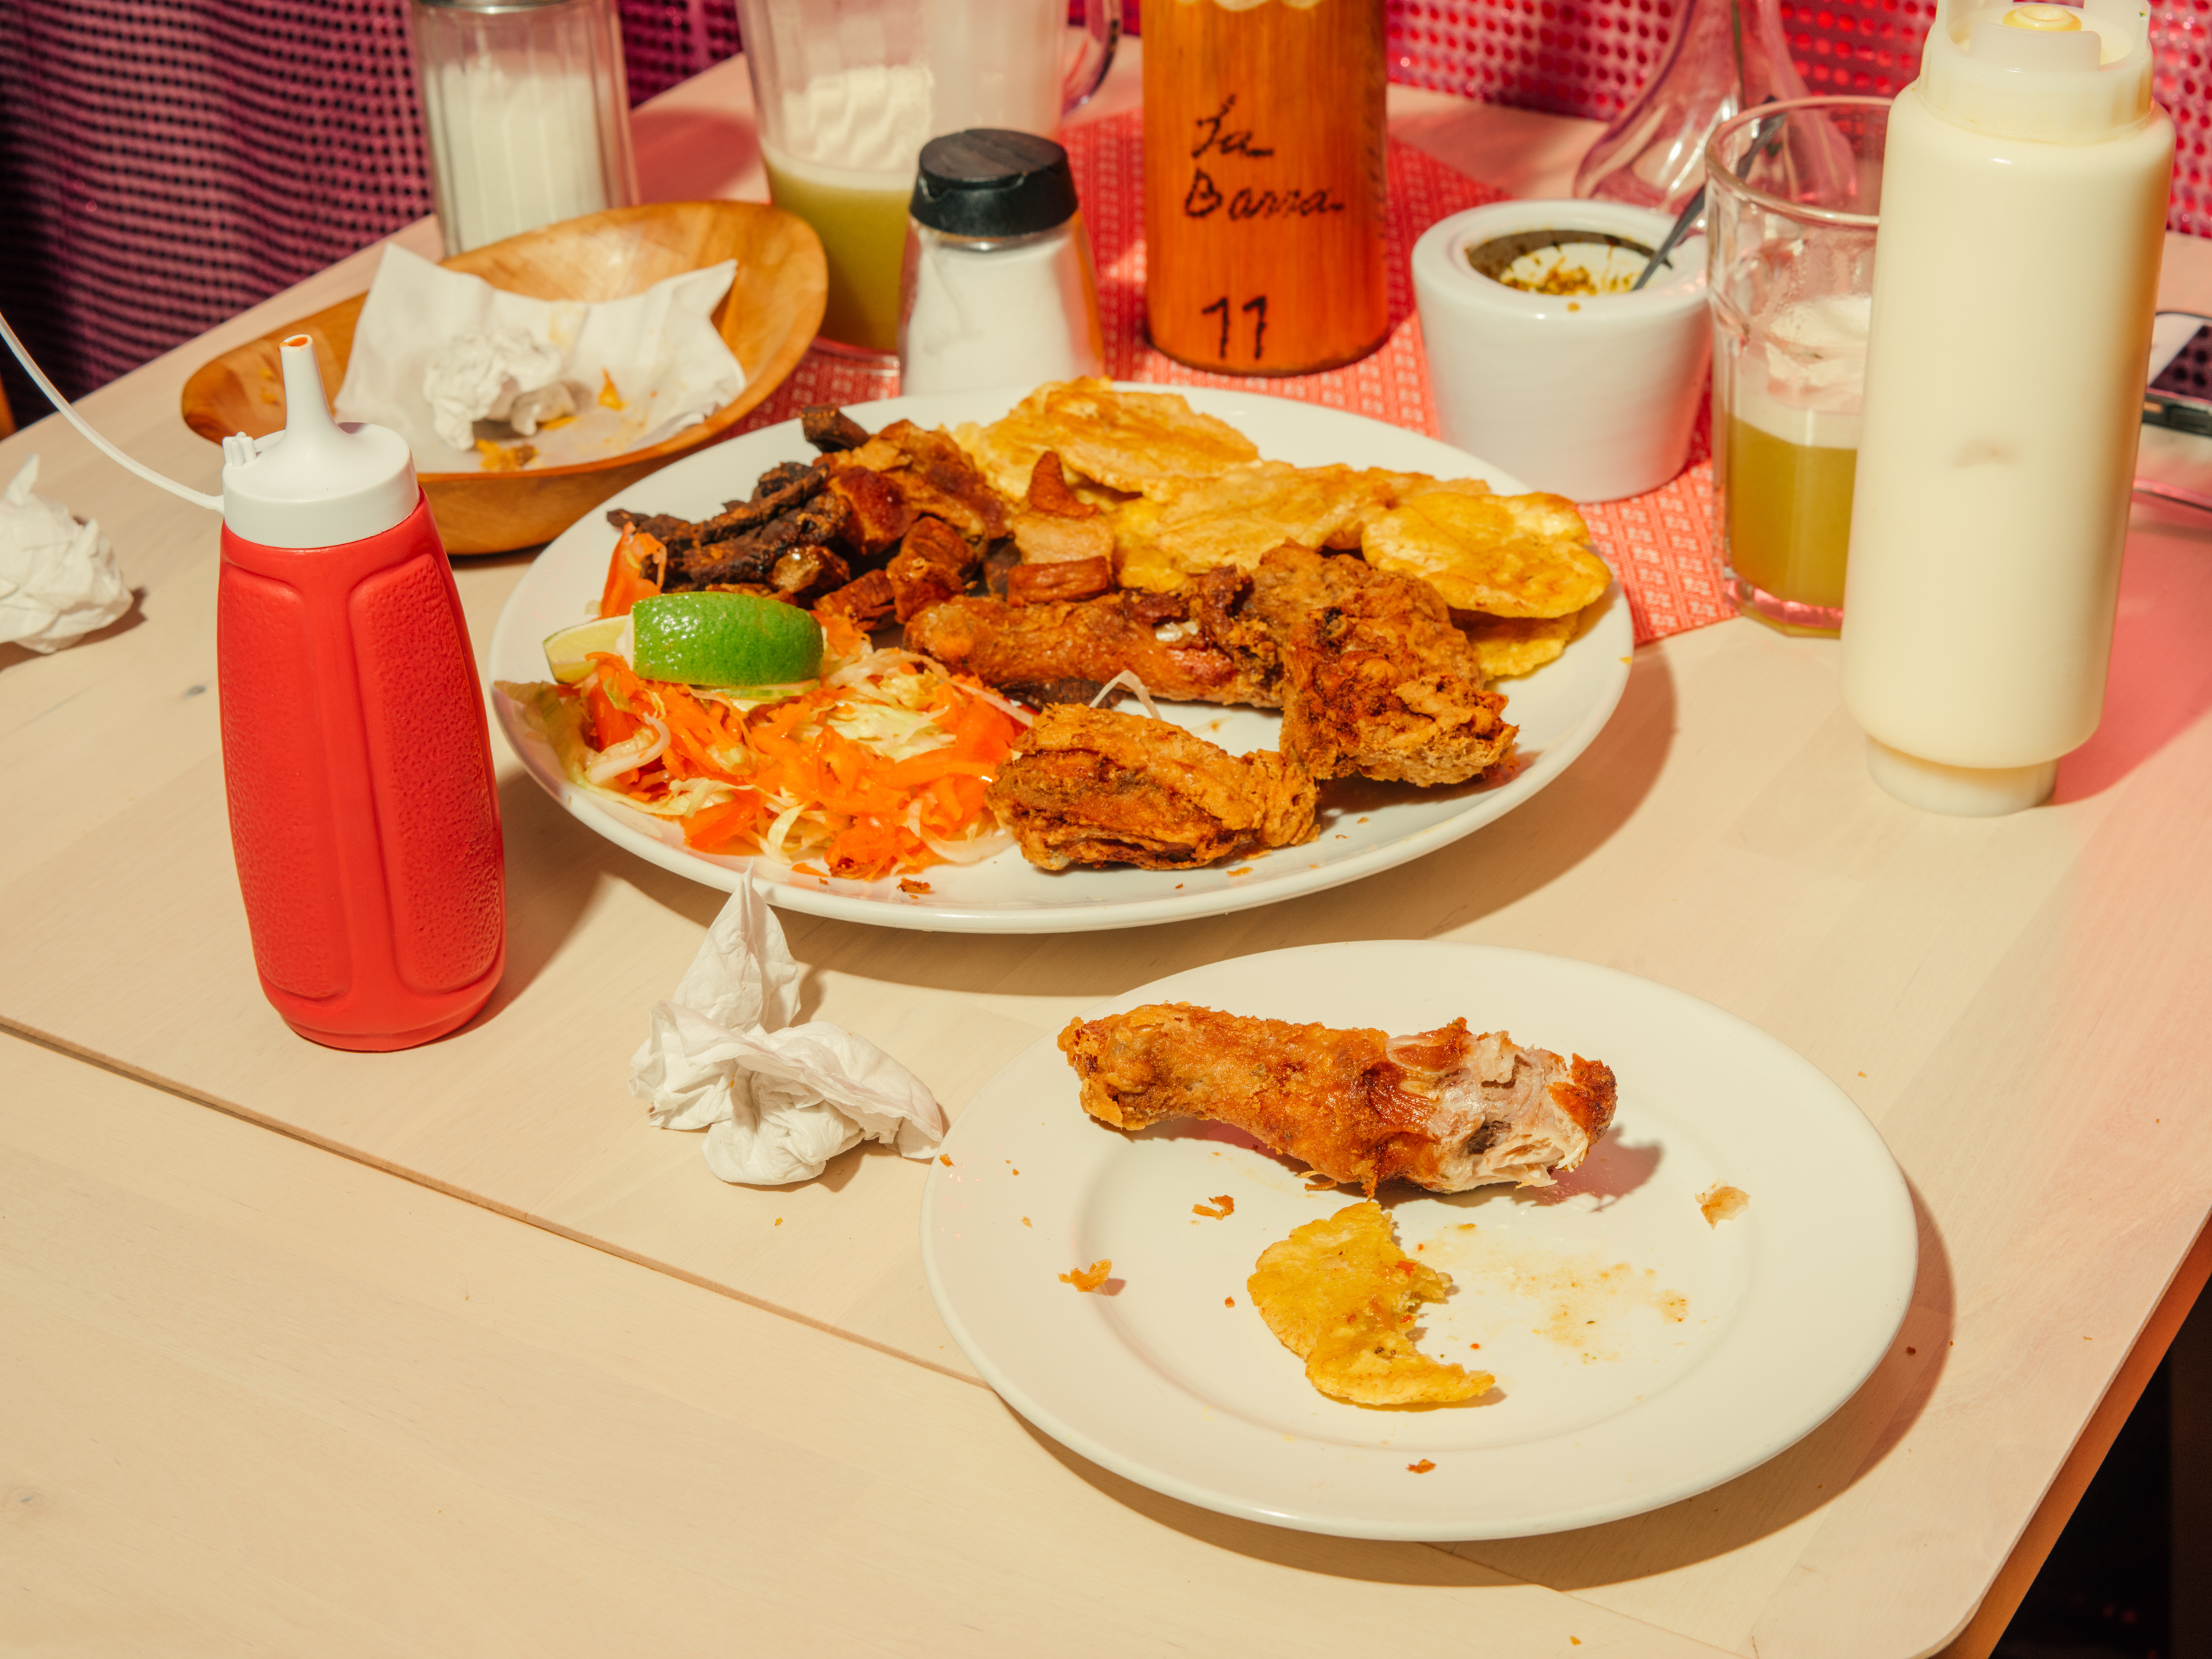 Maria Luisa Riascos-Solis' fried chicken at La Barra in Elephant and Castle is some of the city's best